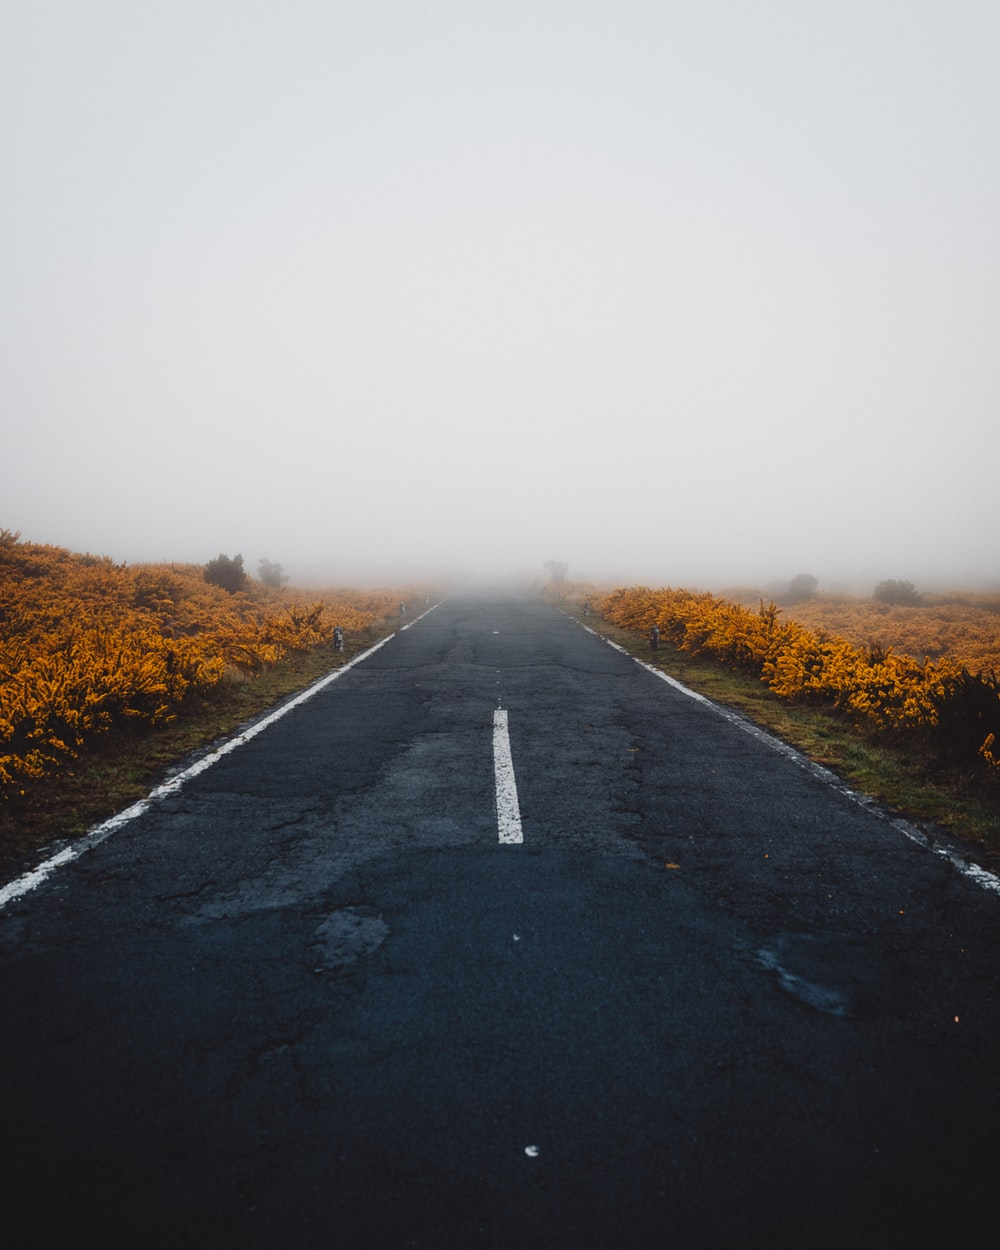 gray paved road under gray sky